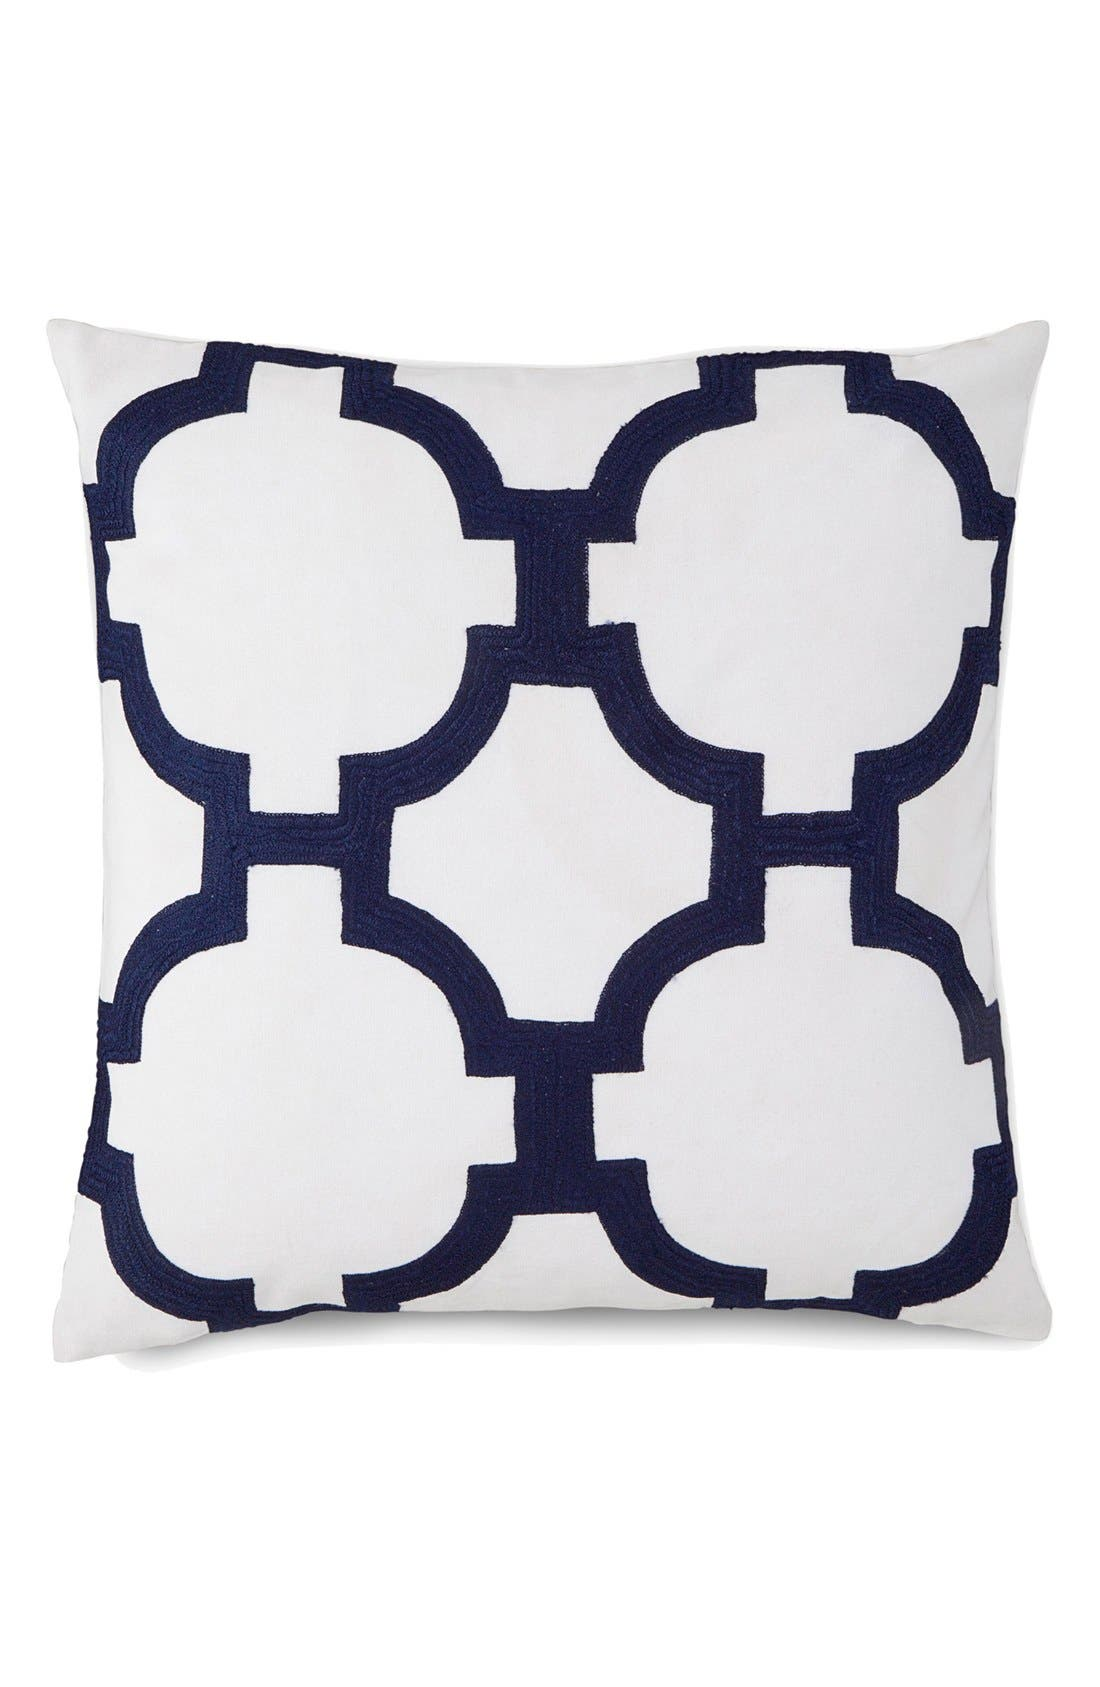 'Embroidered Links' Pillow,                             Main thumbnail 1, color,                             100